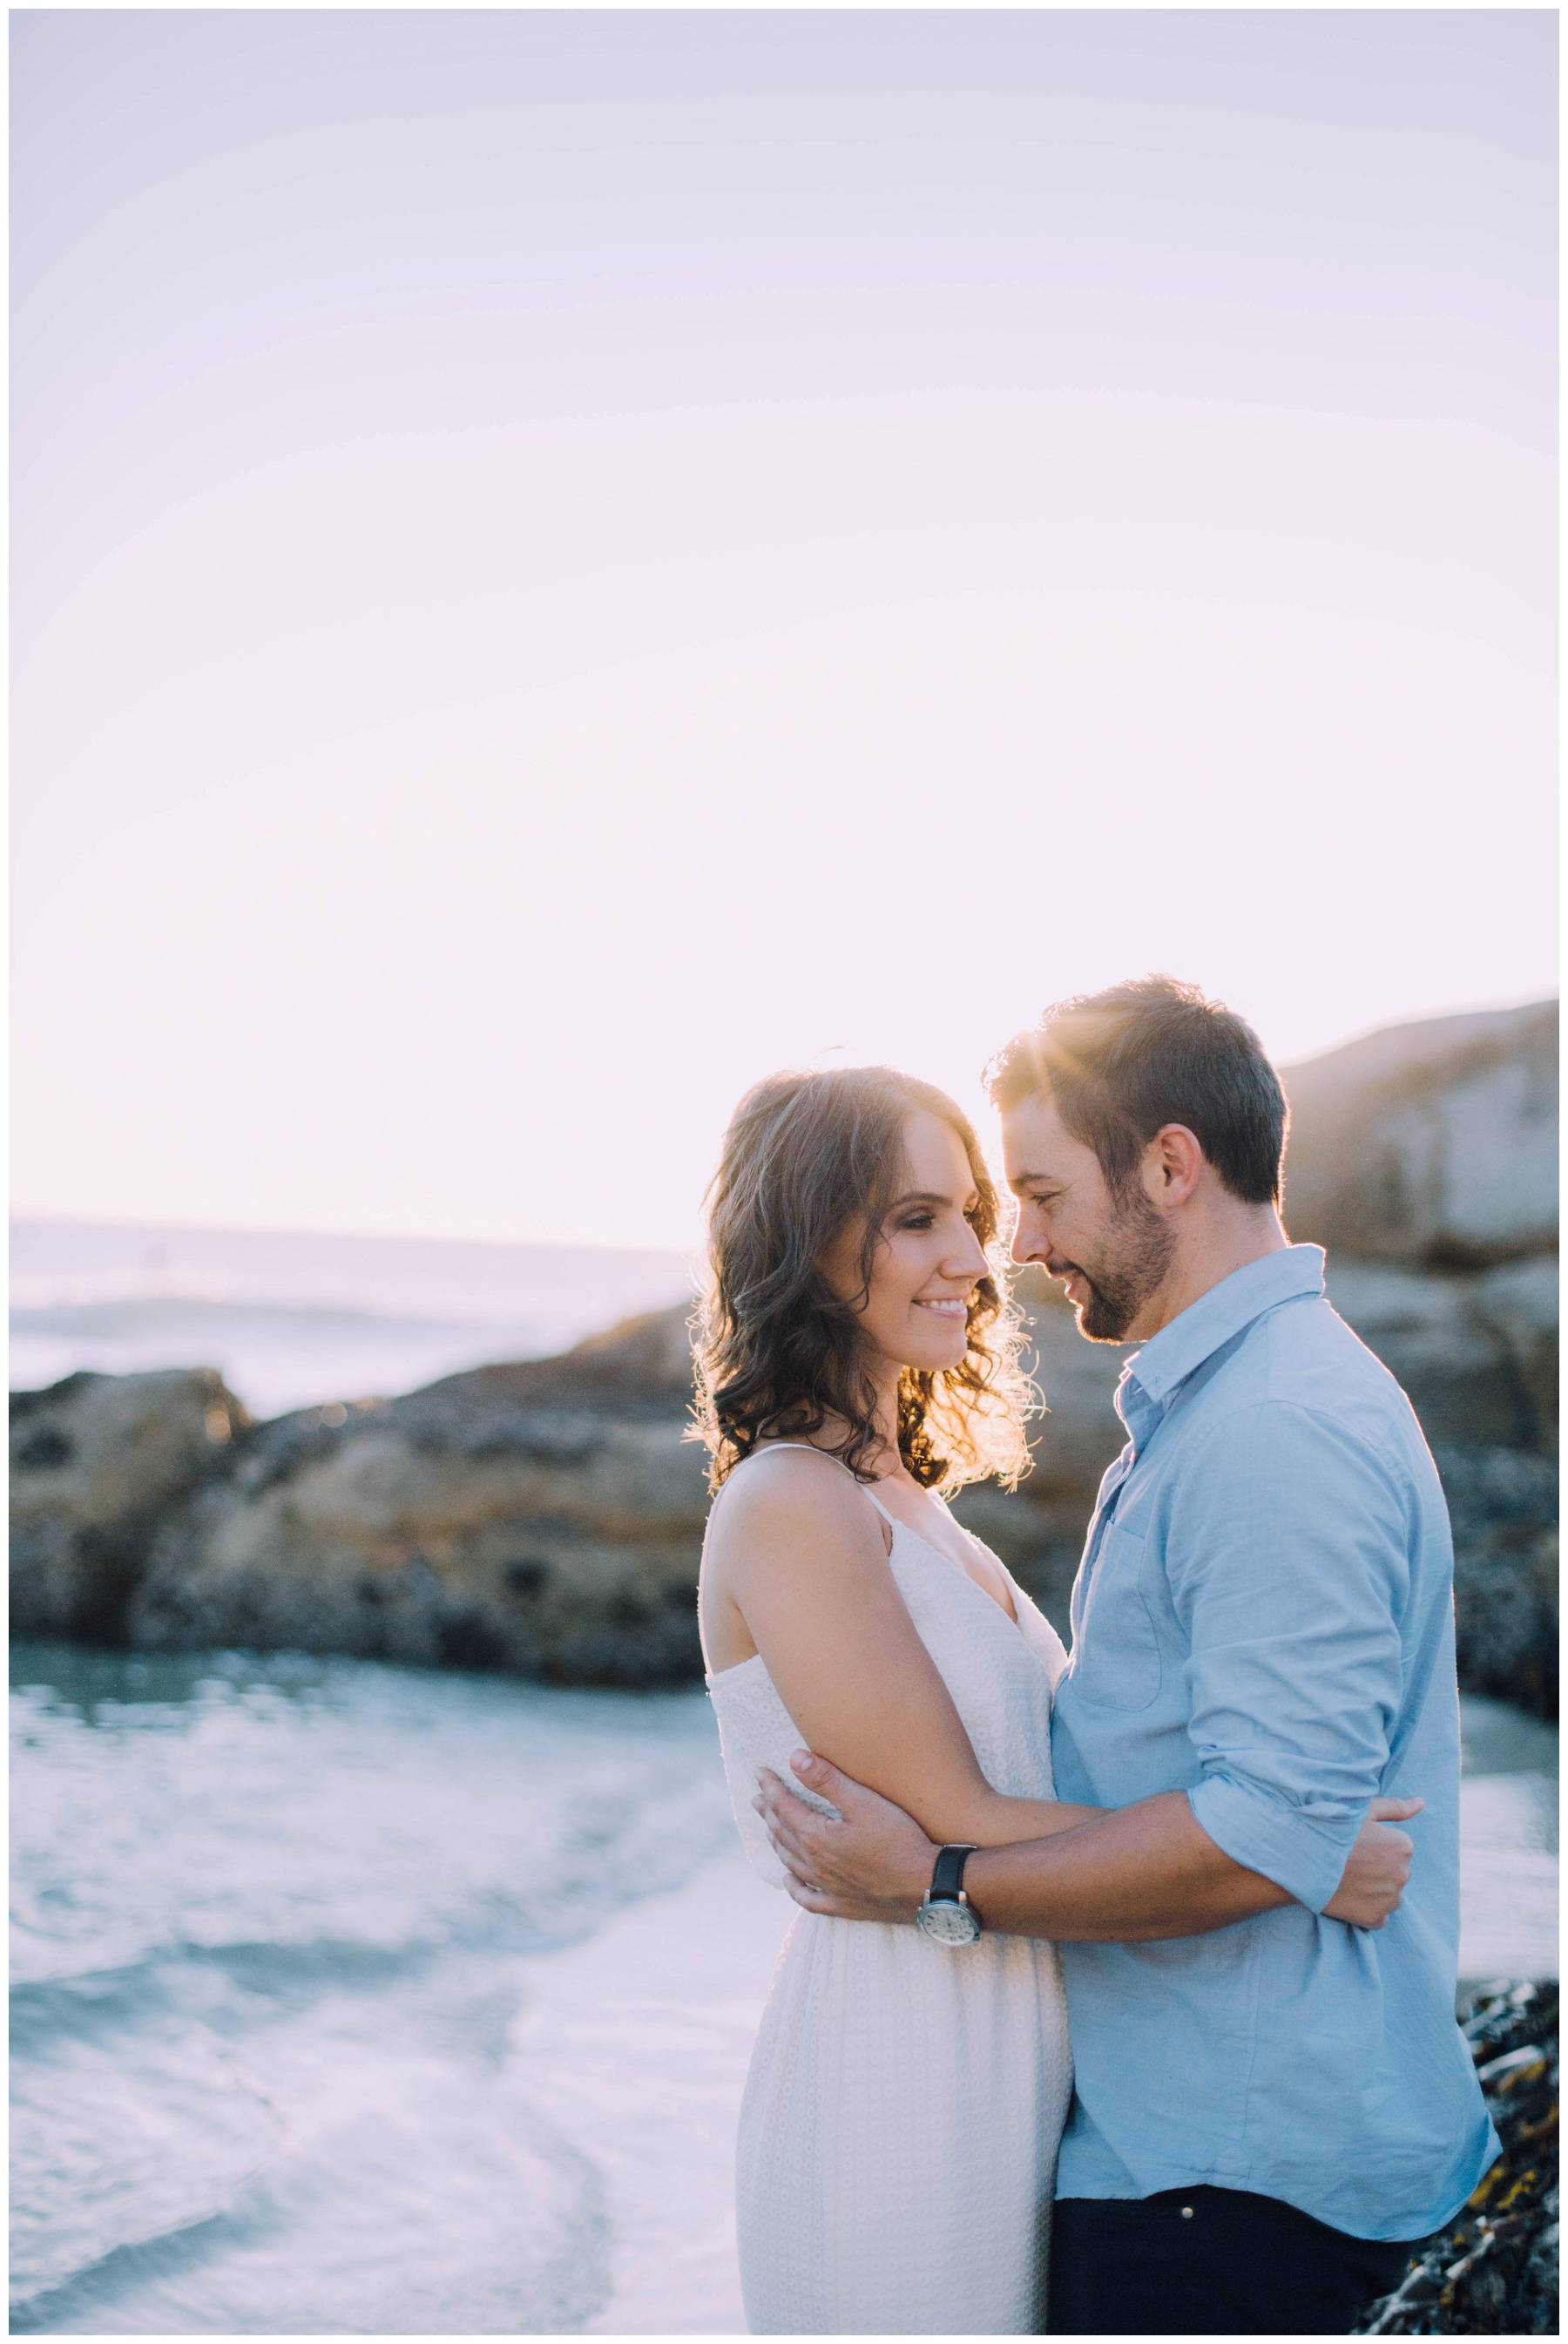 Ronel Kruger Cape Town Wedding and Lifestyle Photographer_8459.jpg